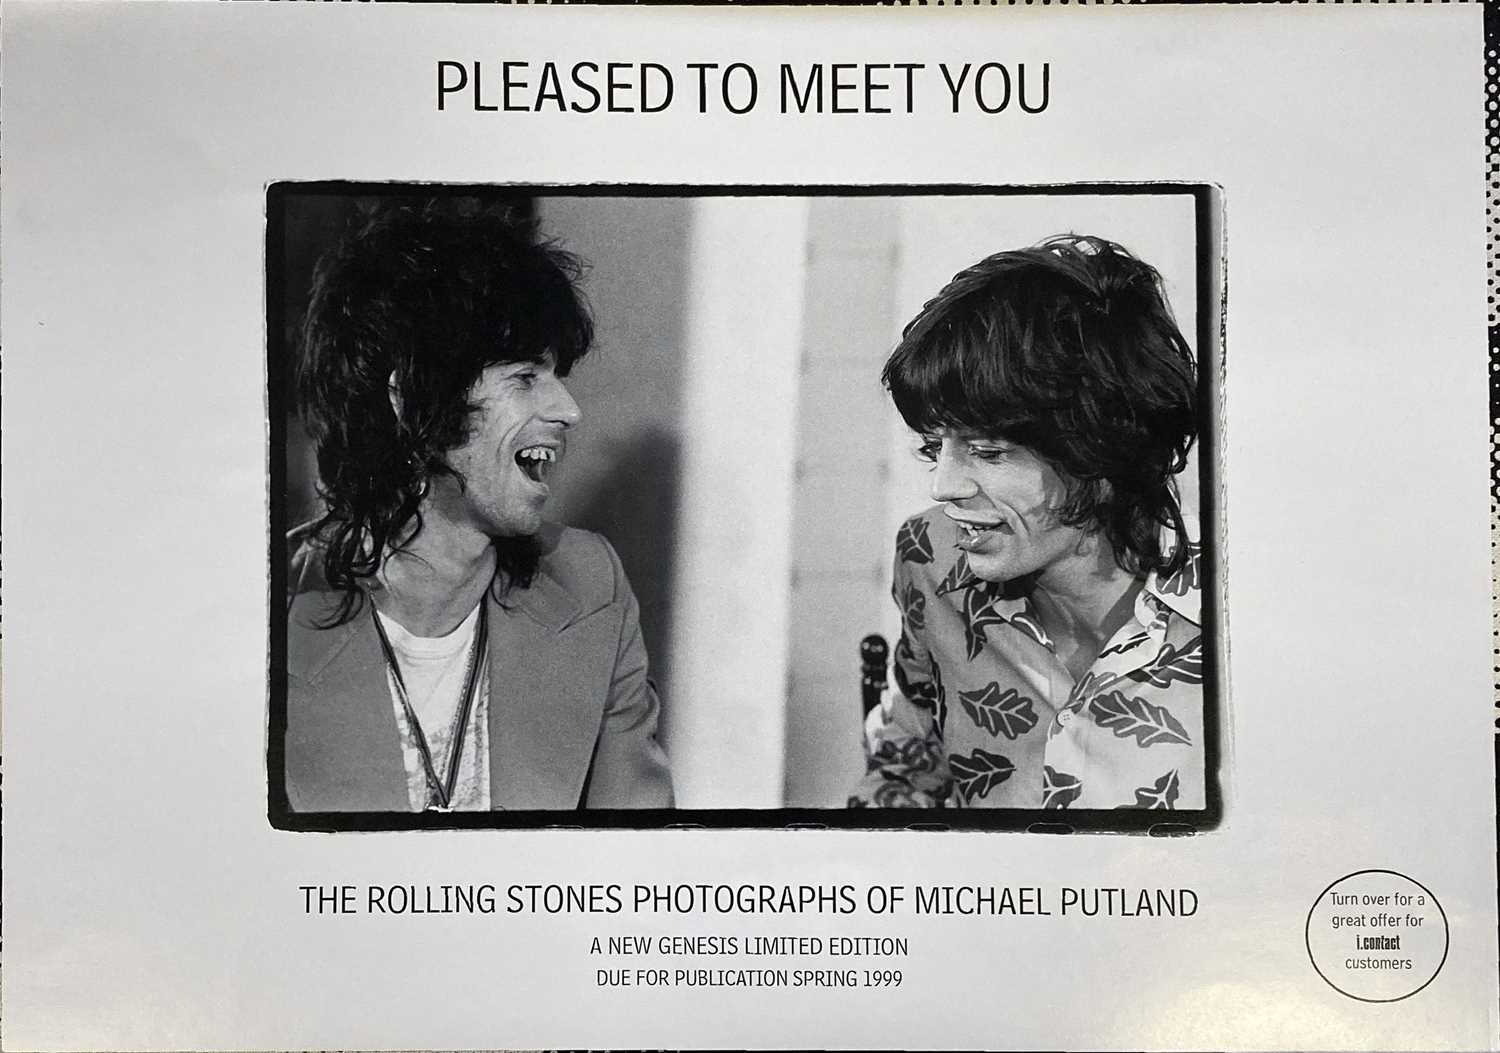 GERED MANKOWITZ - EYE CONTACT LIMITED EDITION ROLLING STONES GENESIS BOOK. - Image 2 of 6